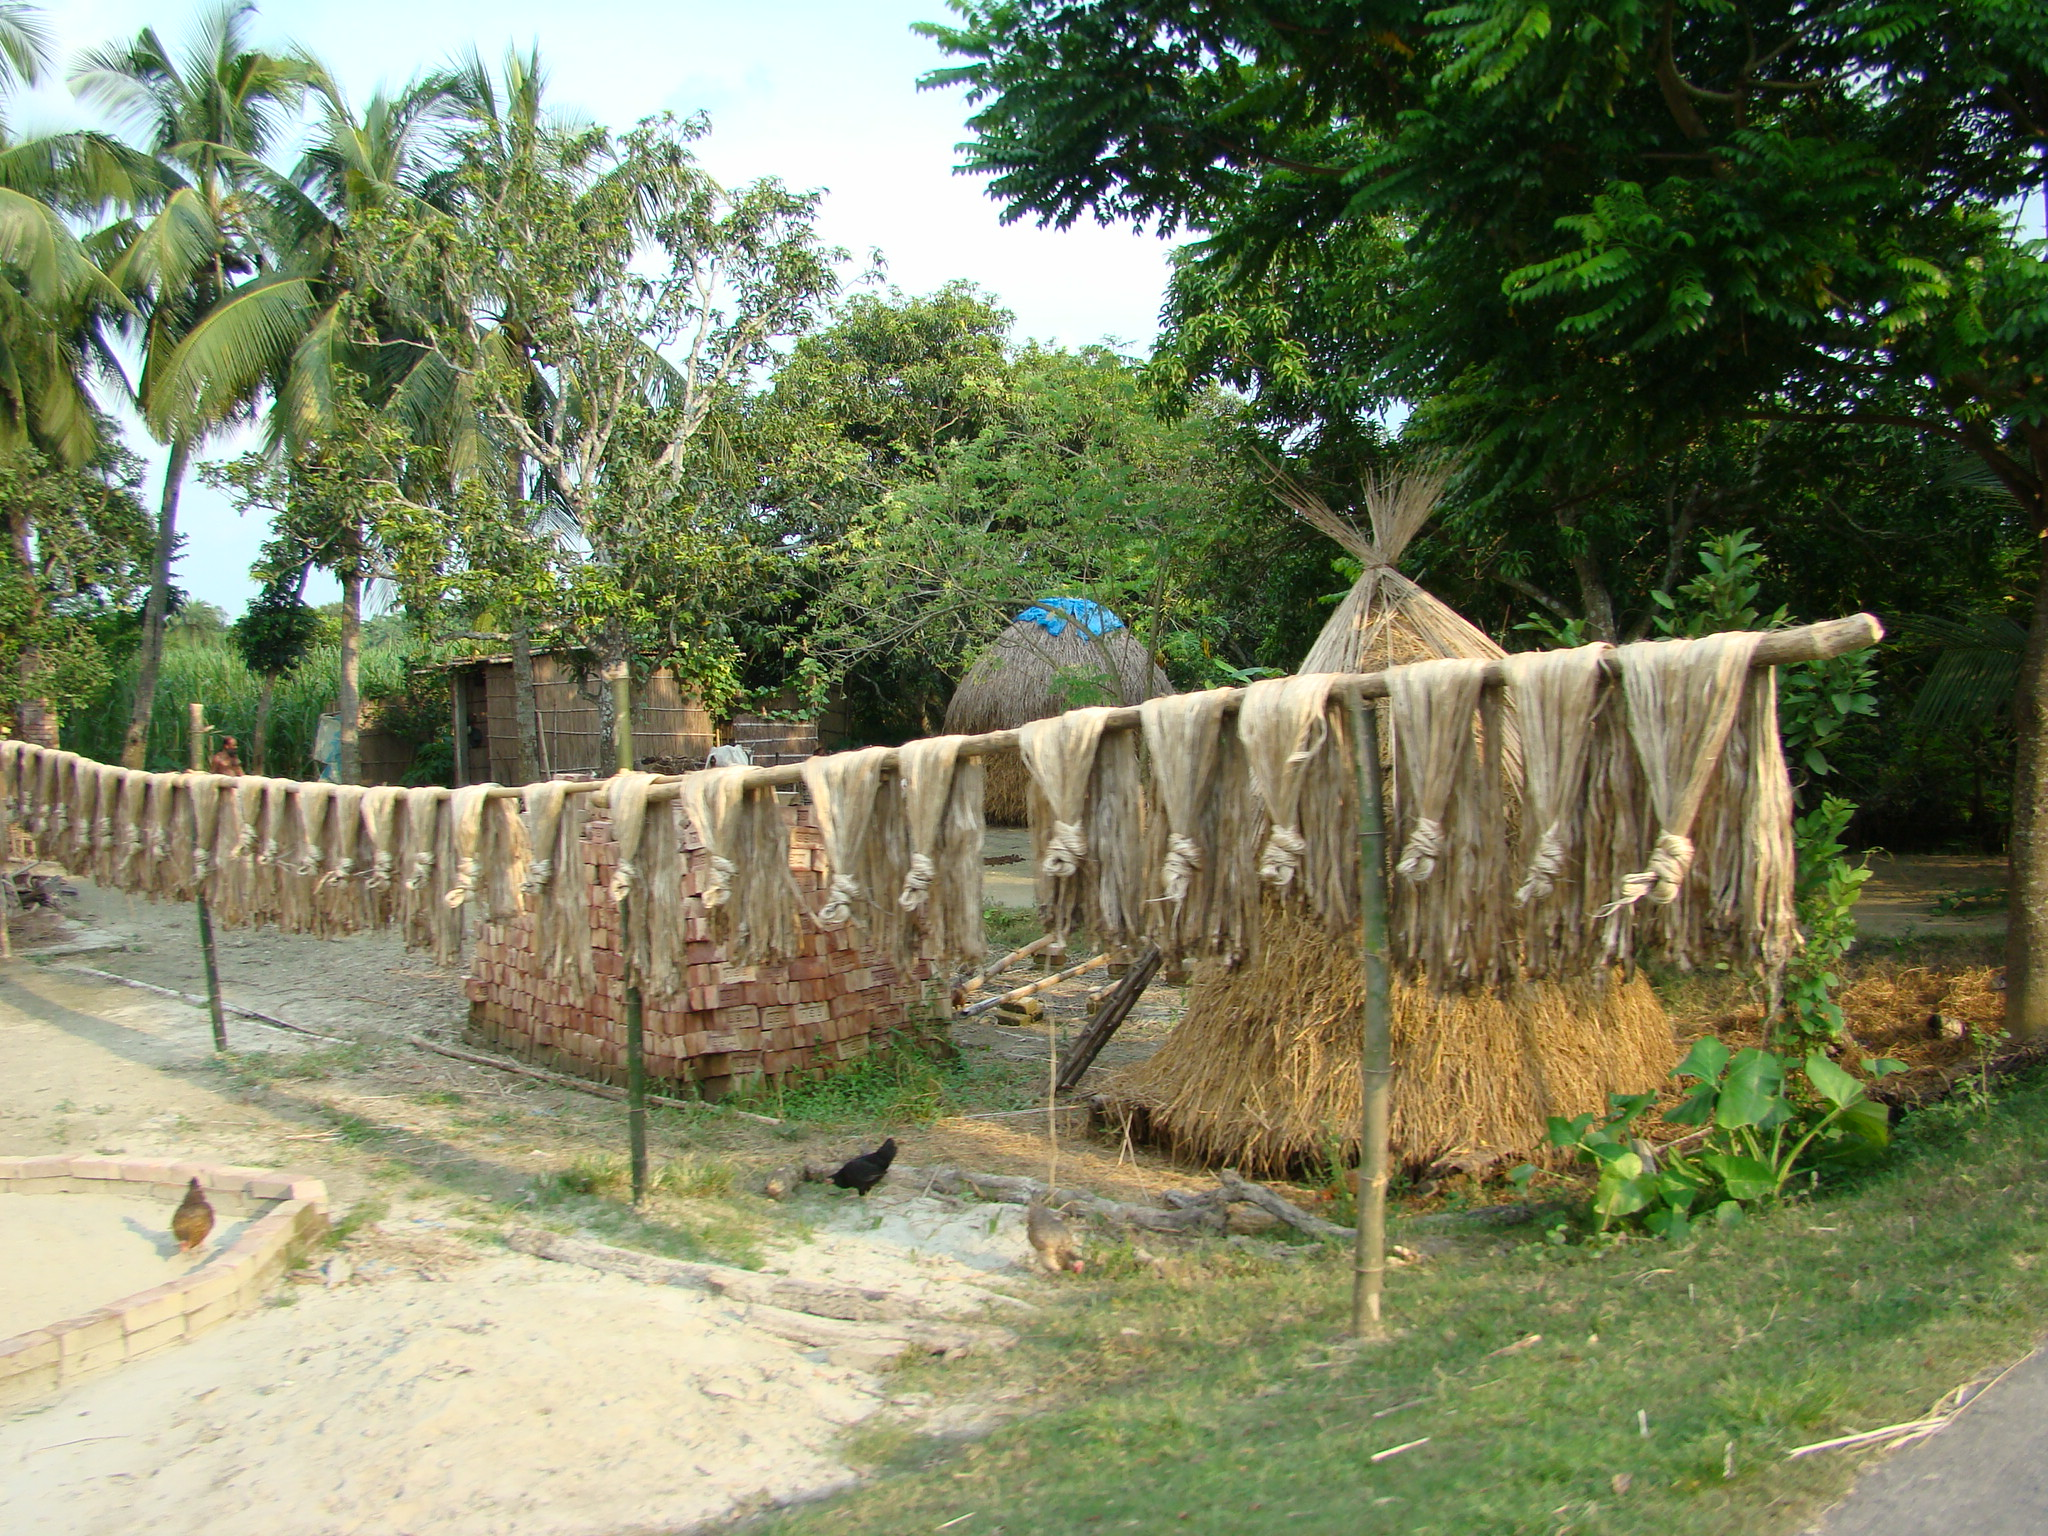 File:Jute Cultivation and Processing Bangladesh.JPG - Wikimedia ...